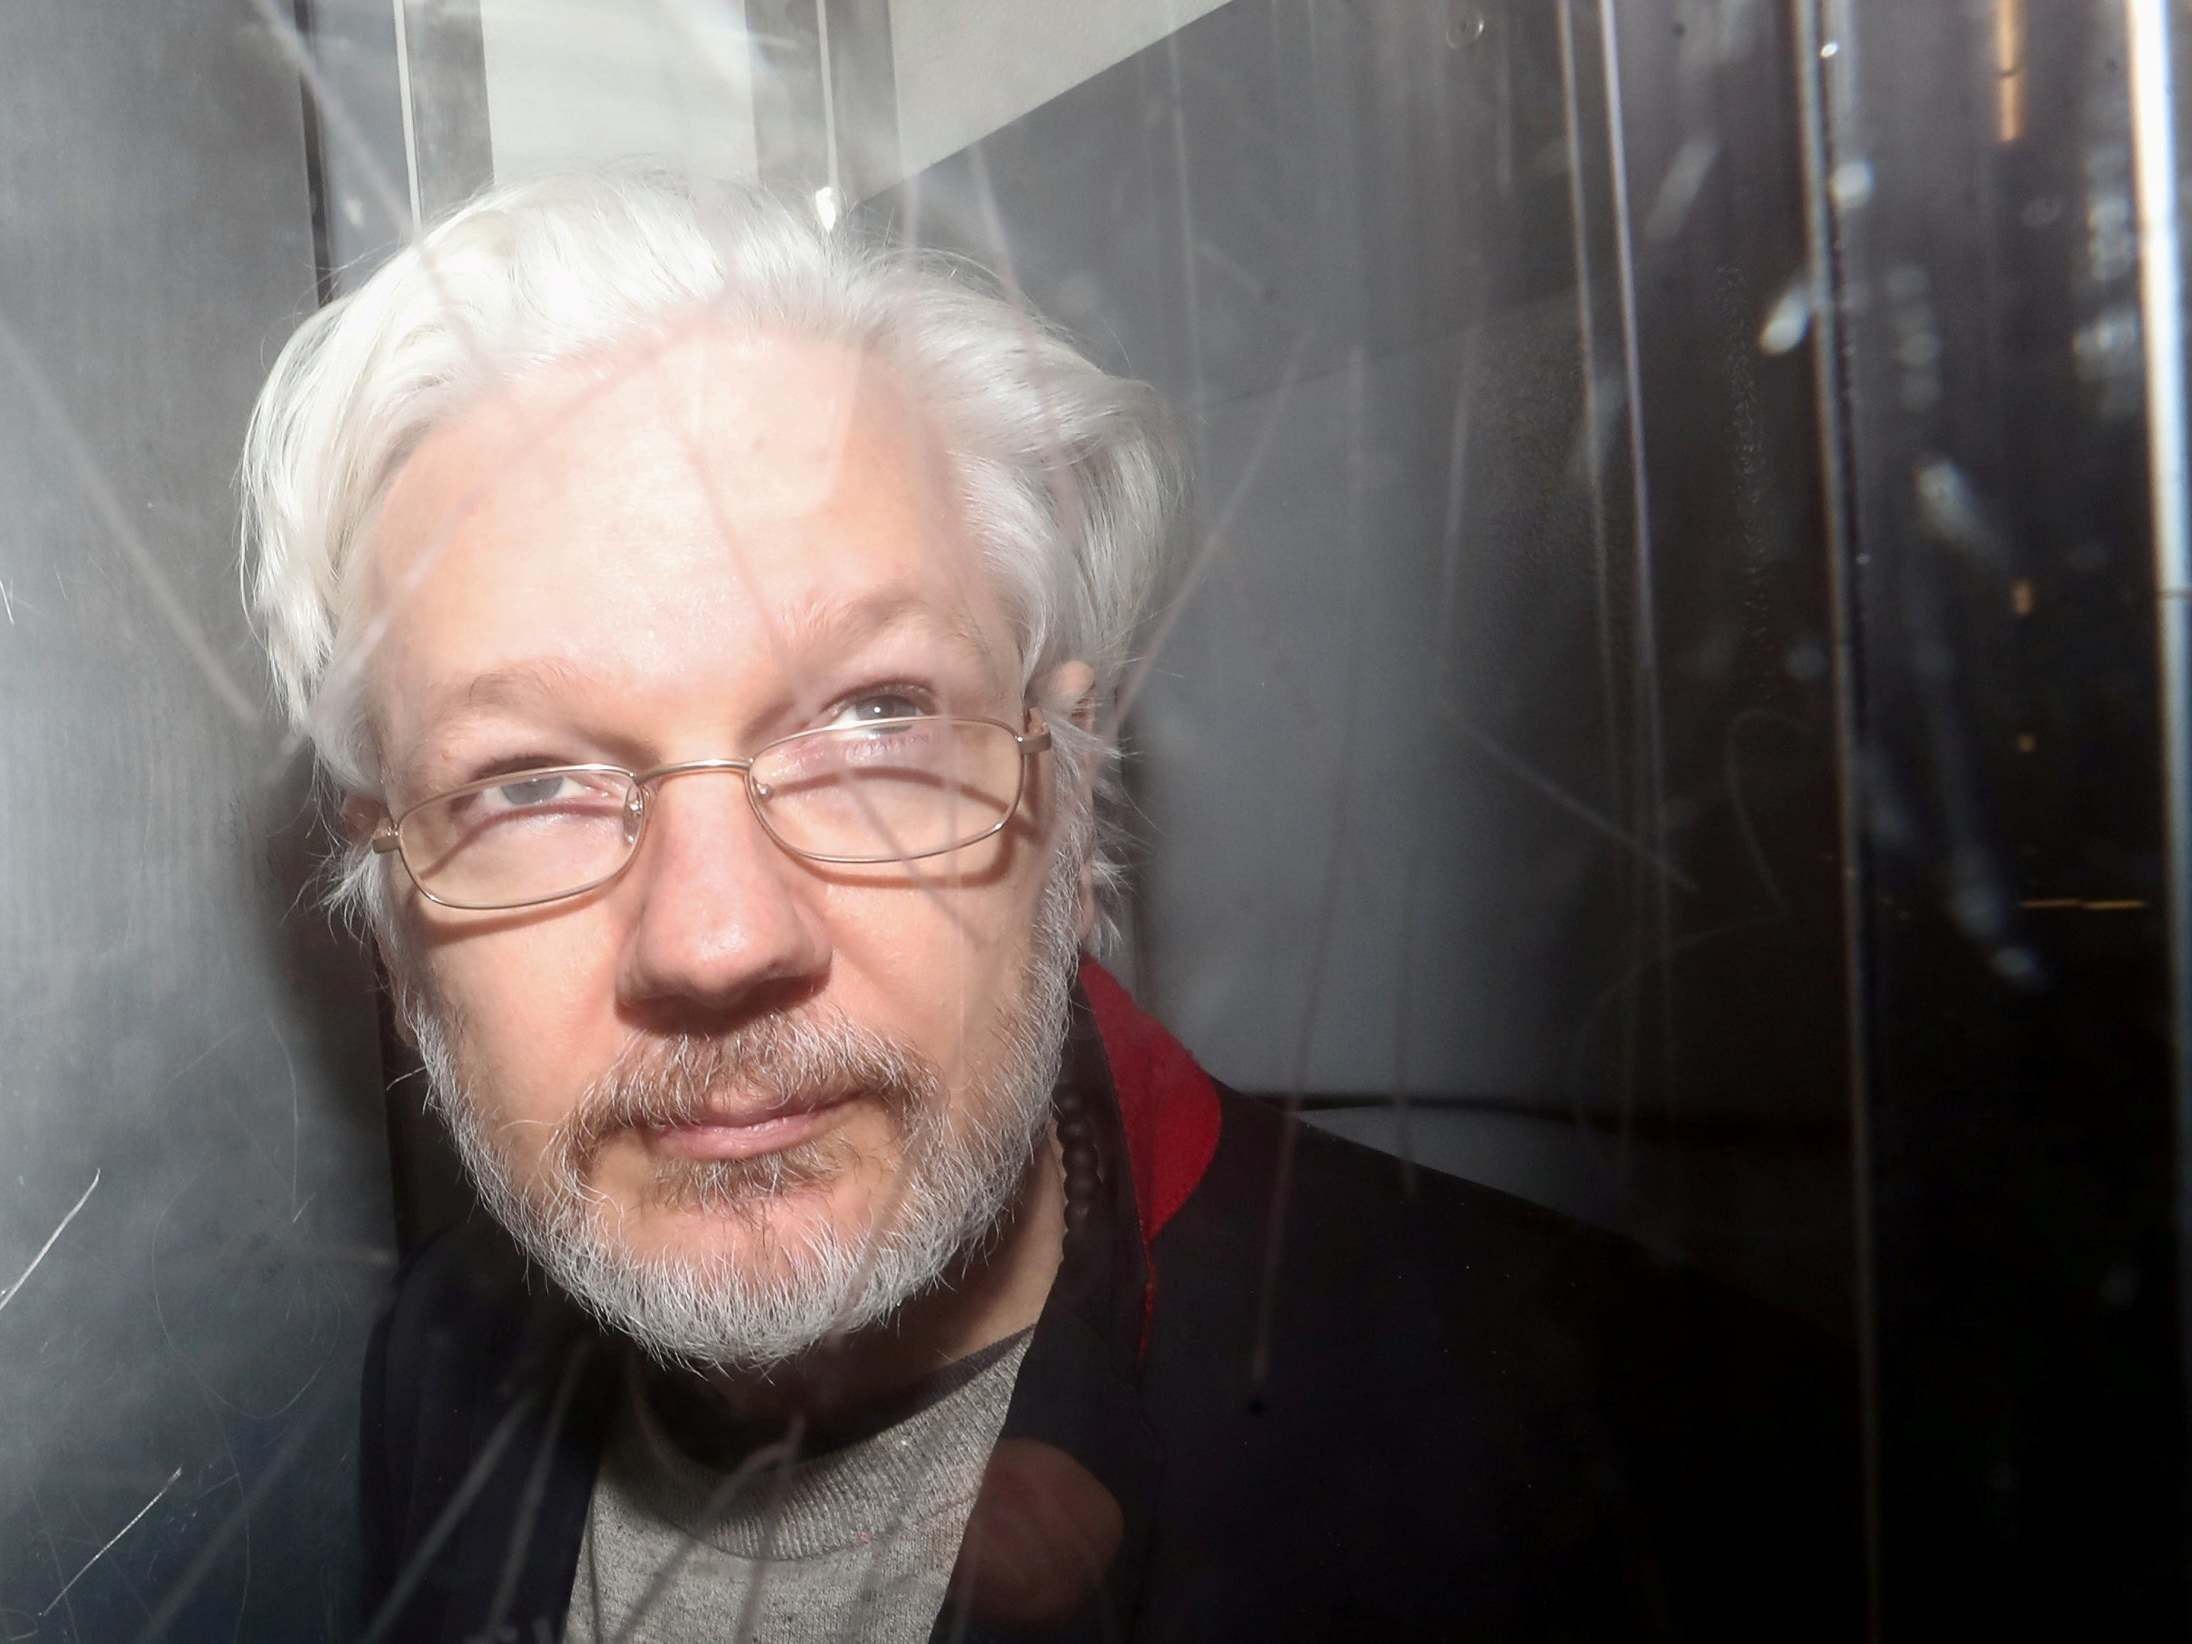 Opinion: If Trump did try a quid pro quo with Julian Assange, let's not react like we've been beaten with an apathy bat again